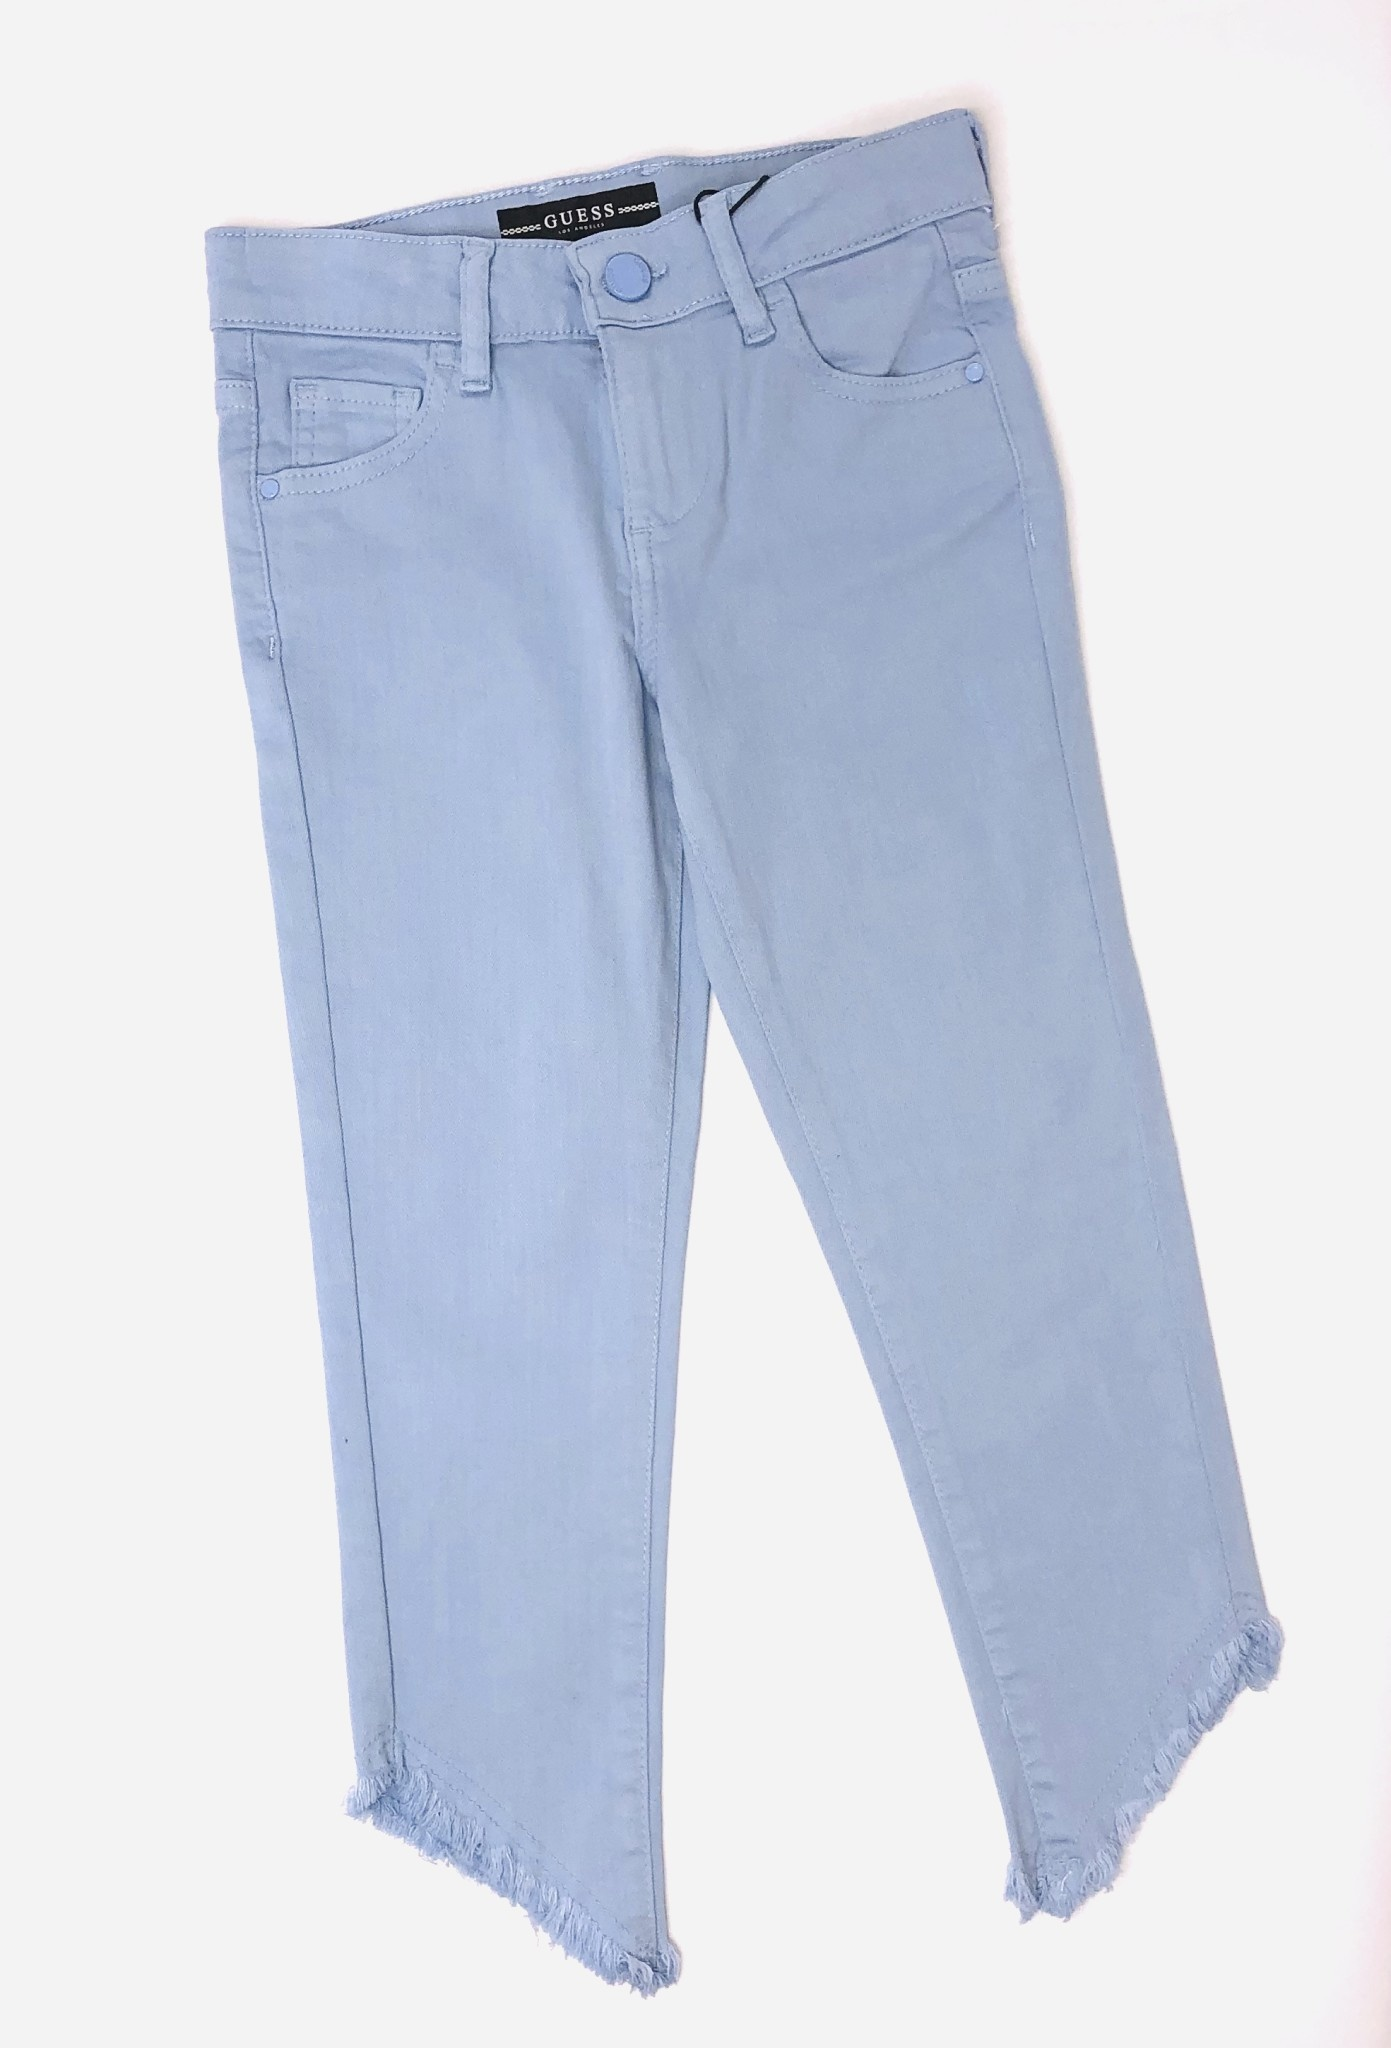 Guess Guess Girls Pale Blue Jeans